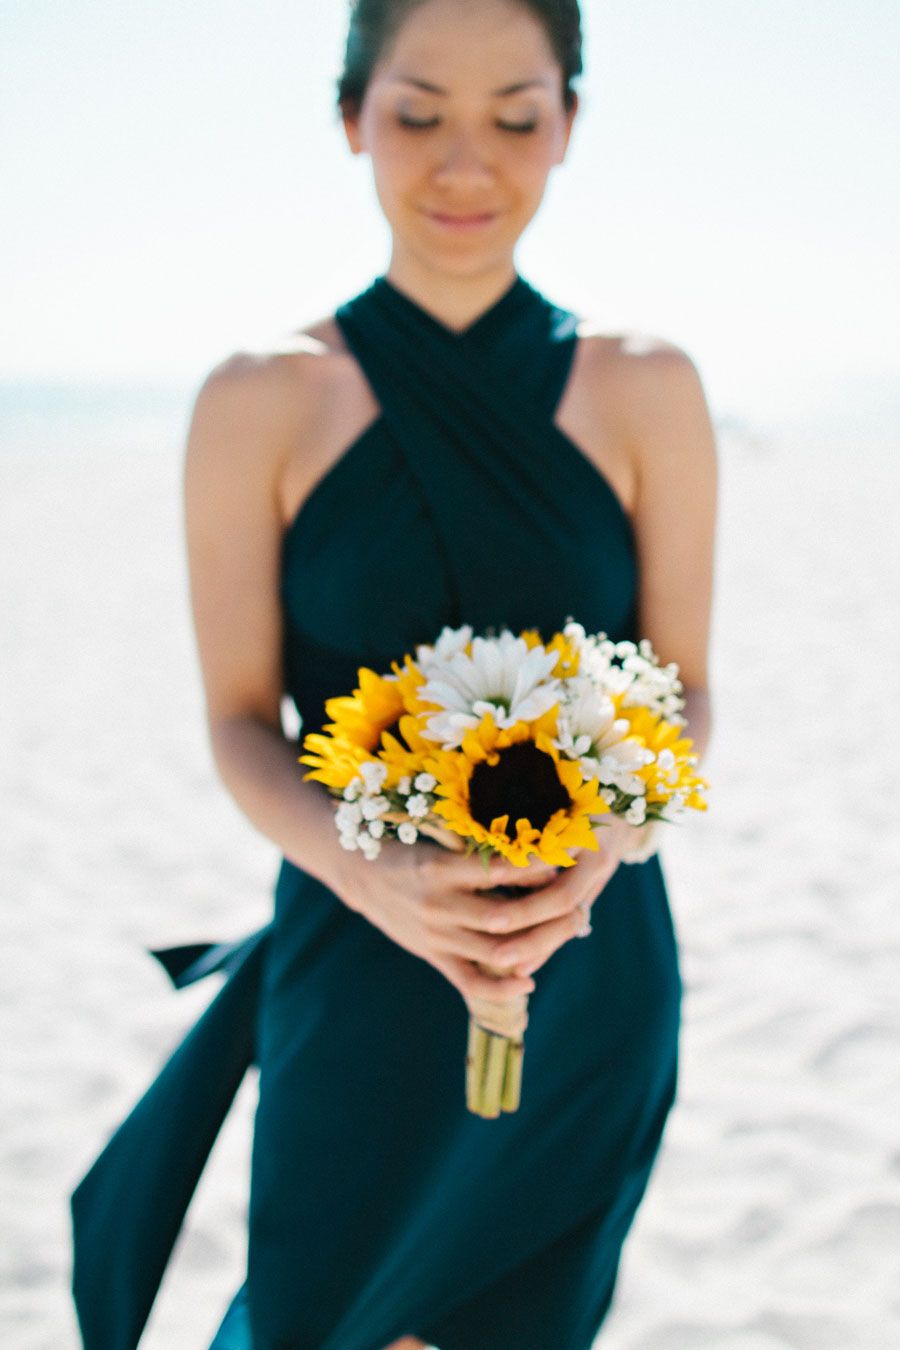 Tampa wedding bridesmaid in navy blue with yellow sunflower